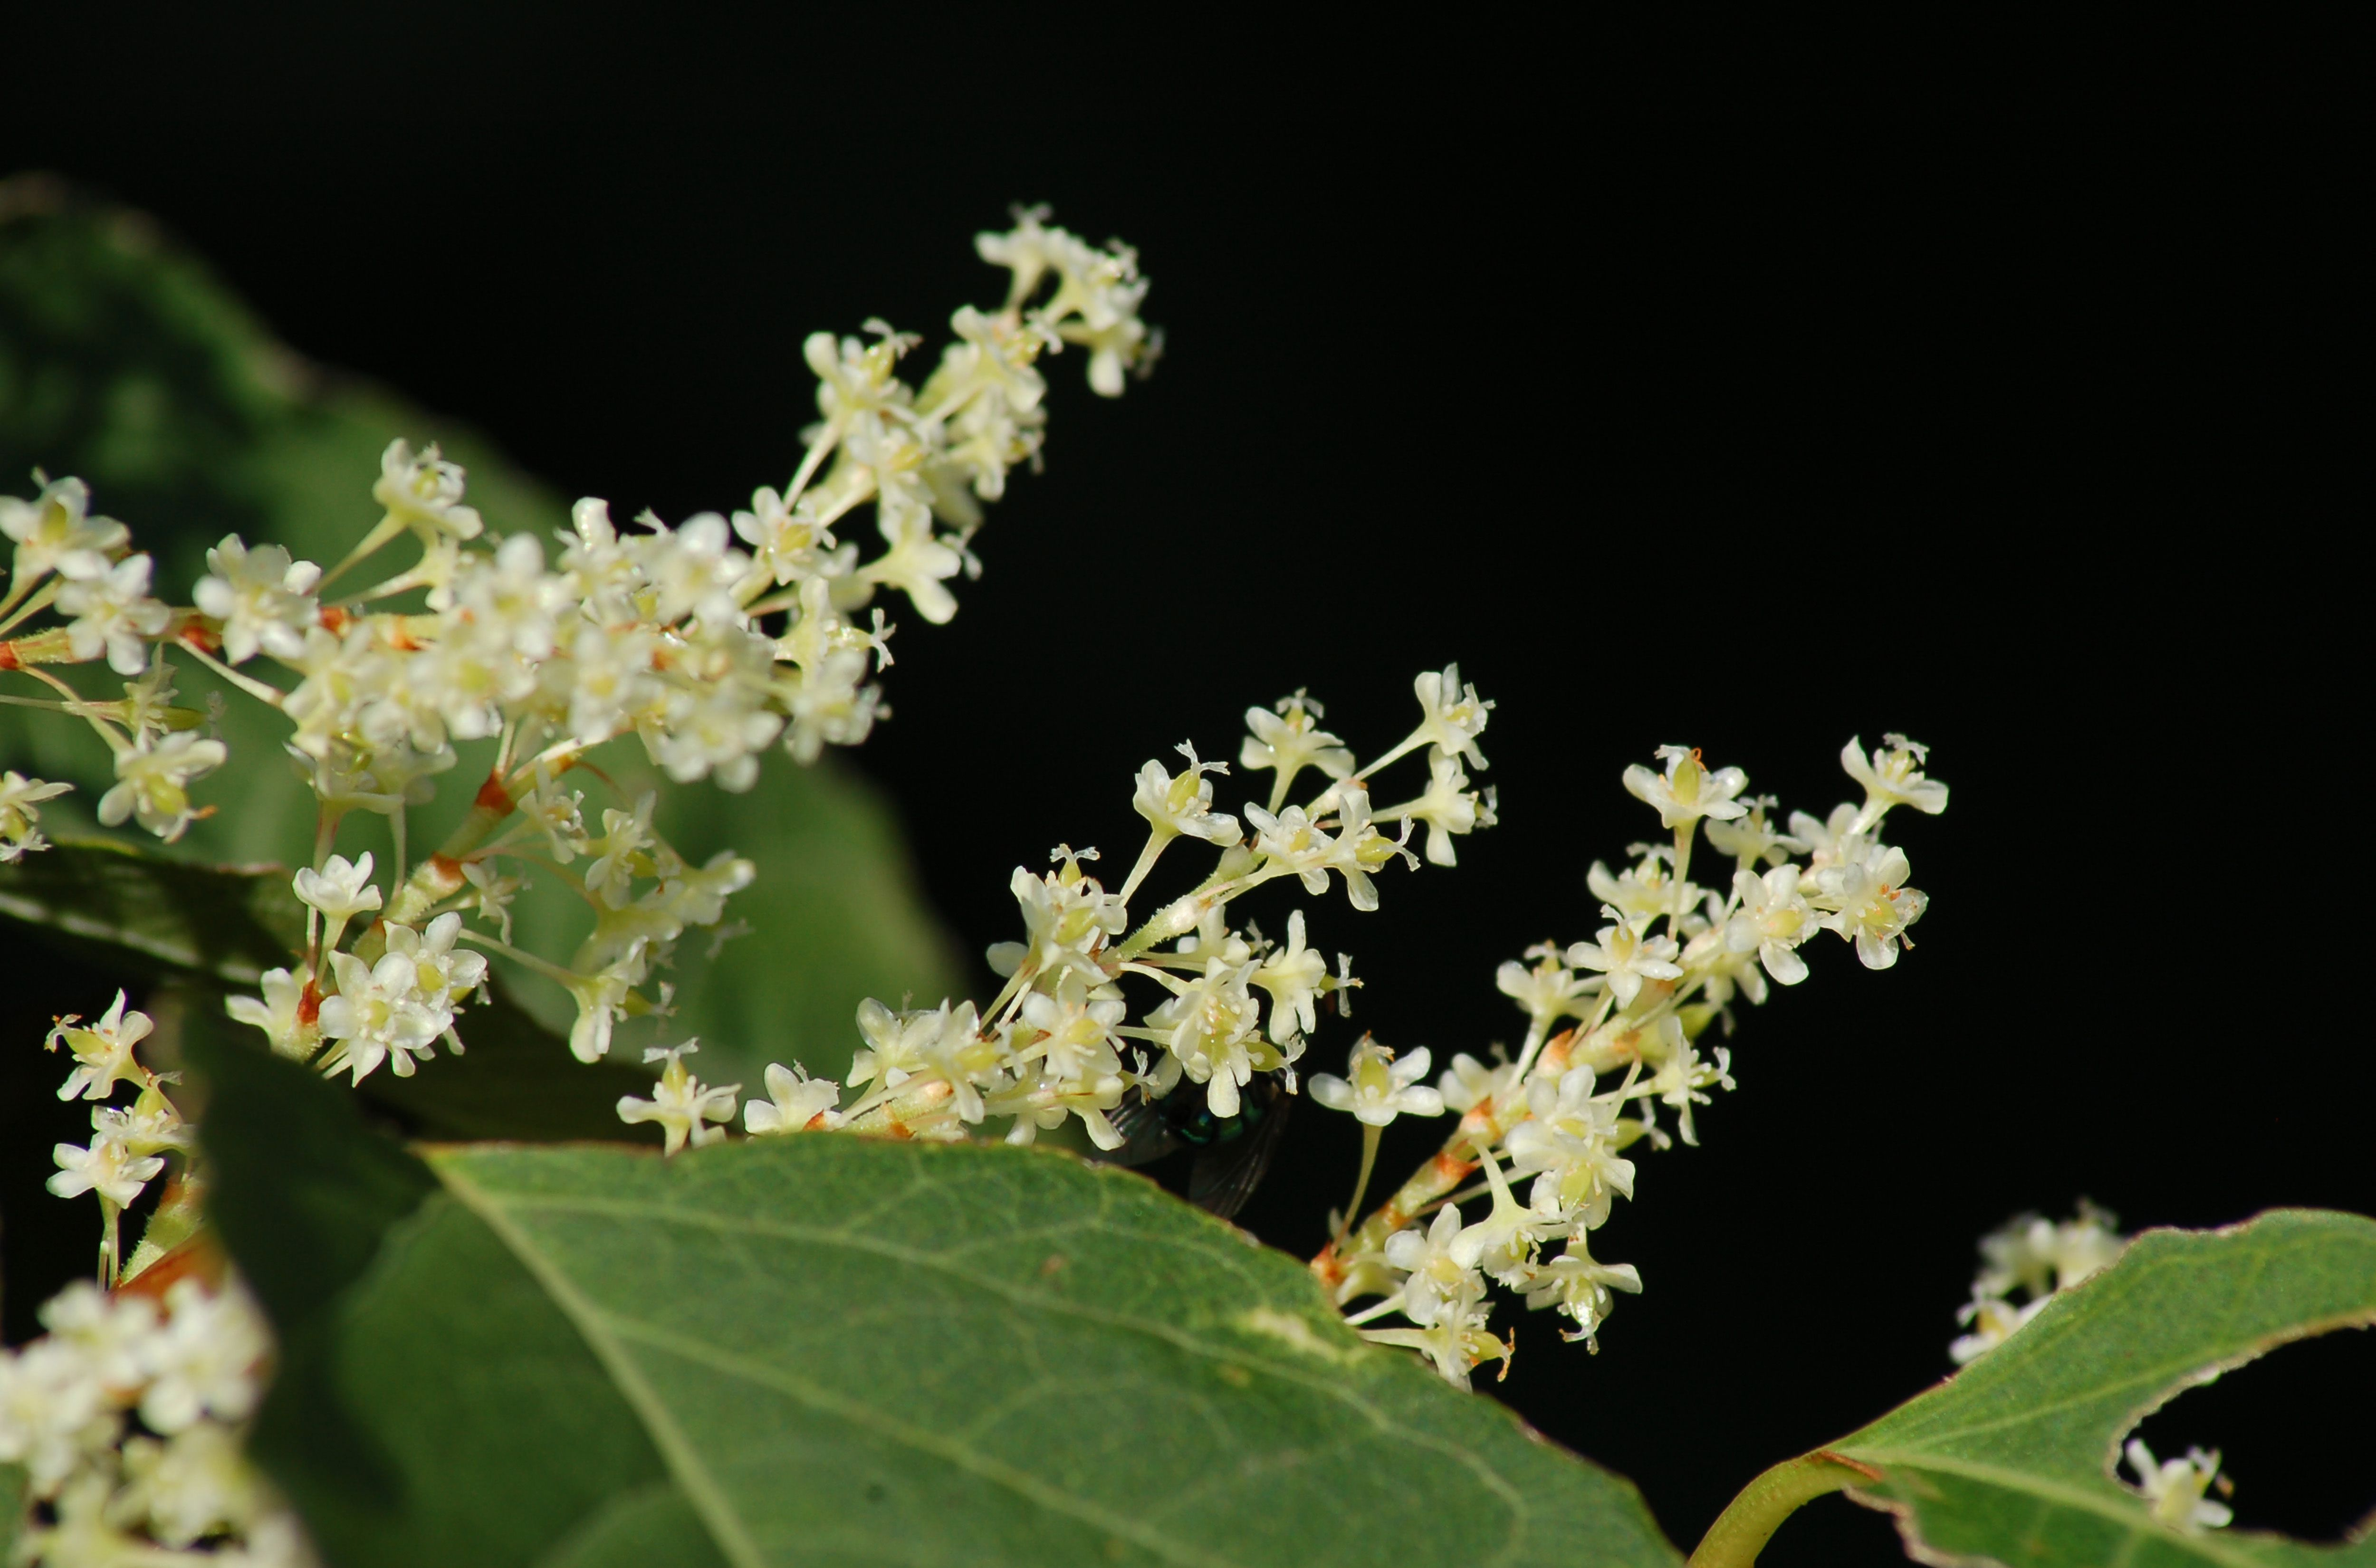 Japanese Knotweed Specialist Offers Removal Tips